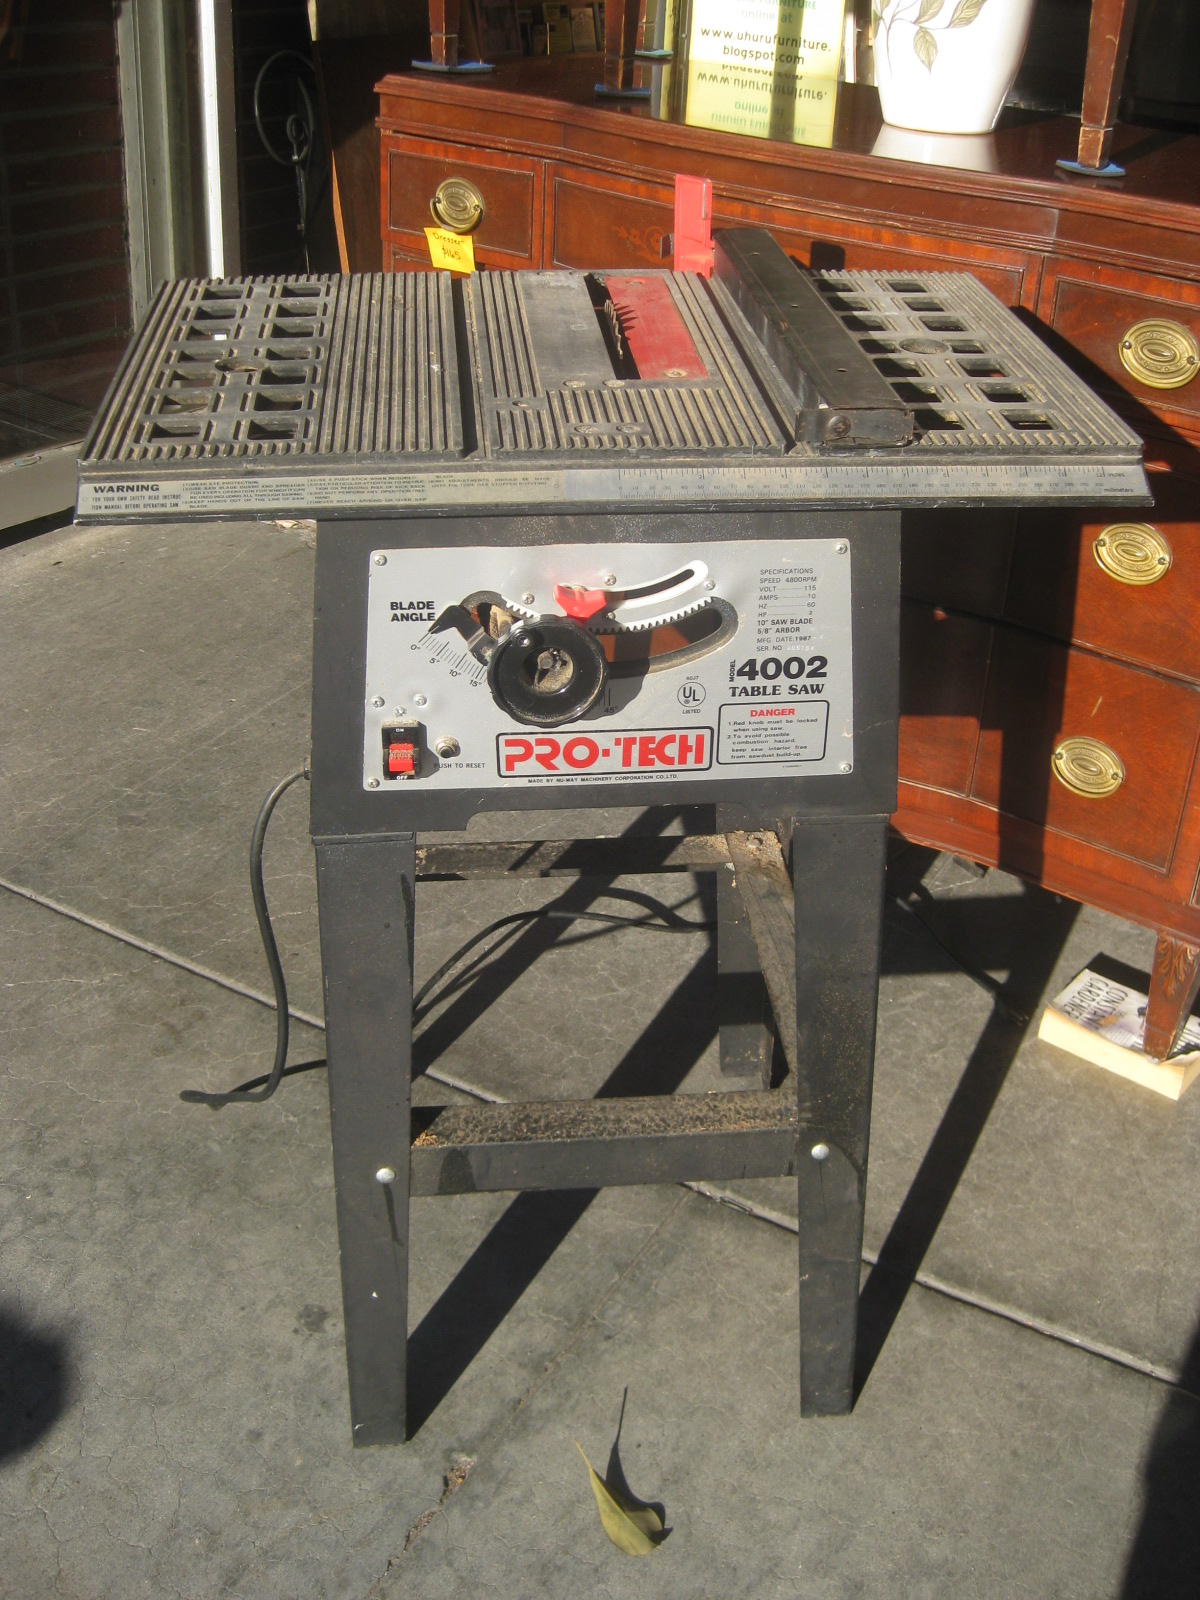 Uhuru furniture collectibles sold pro tech 4002 table saw 60 Pro tech table saw